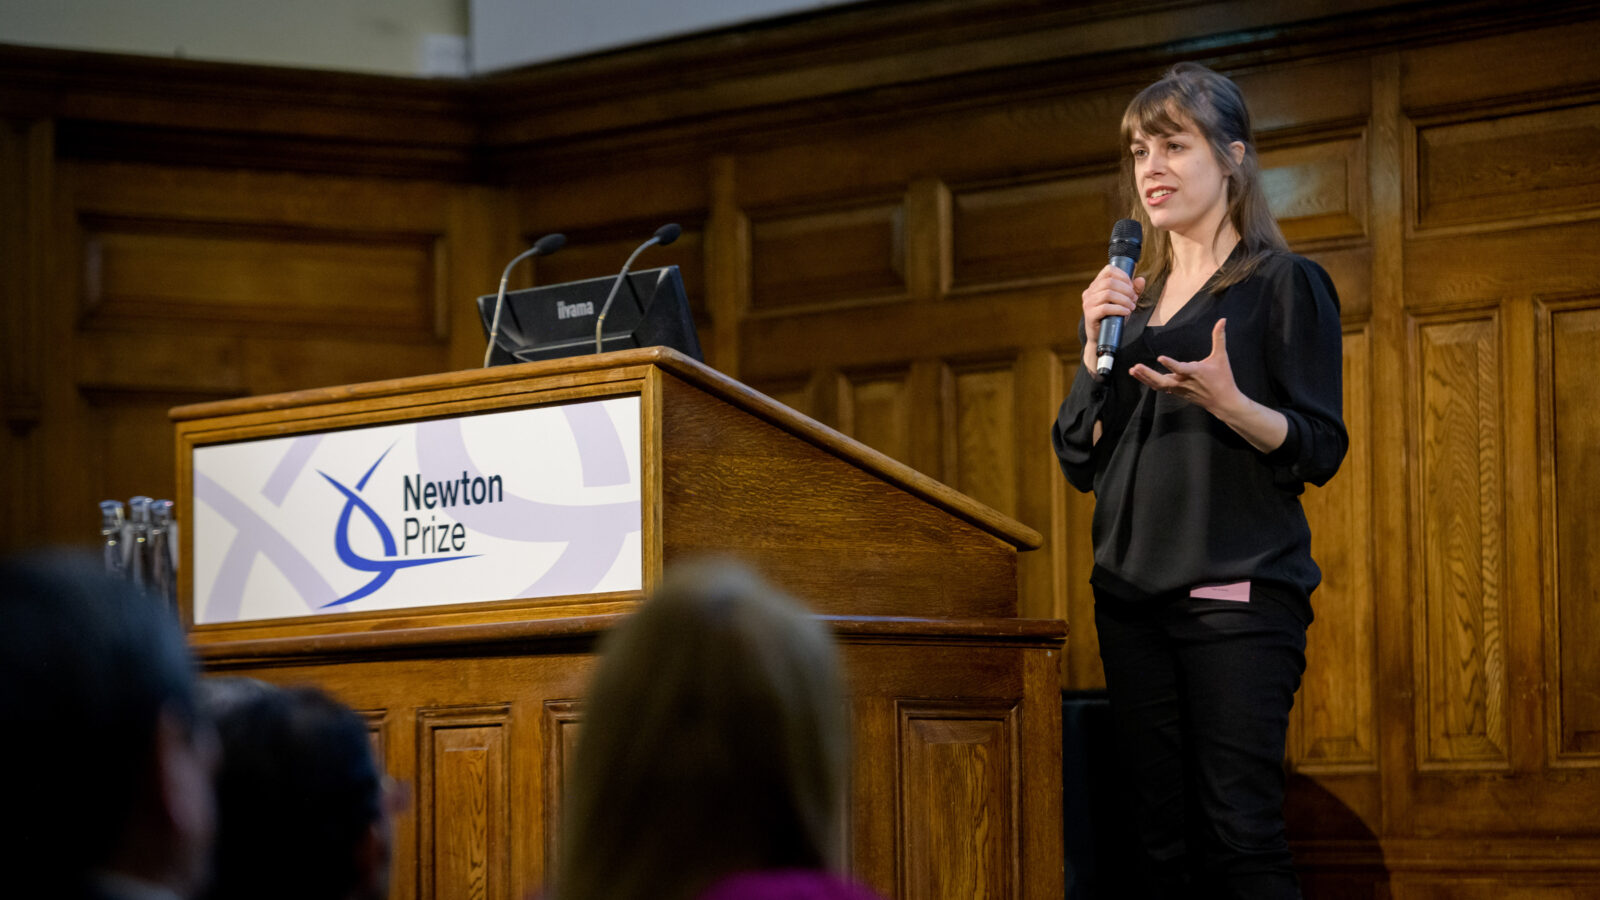 Host stands on stage at Newton Prize